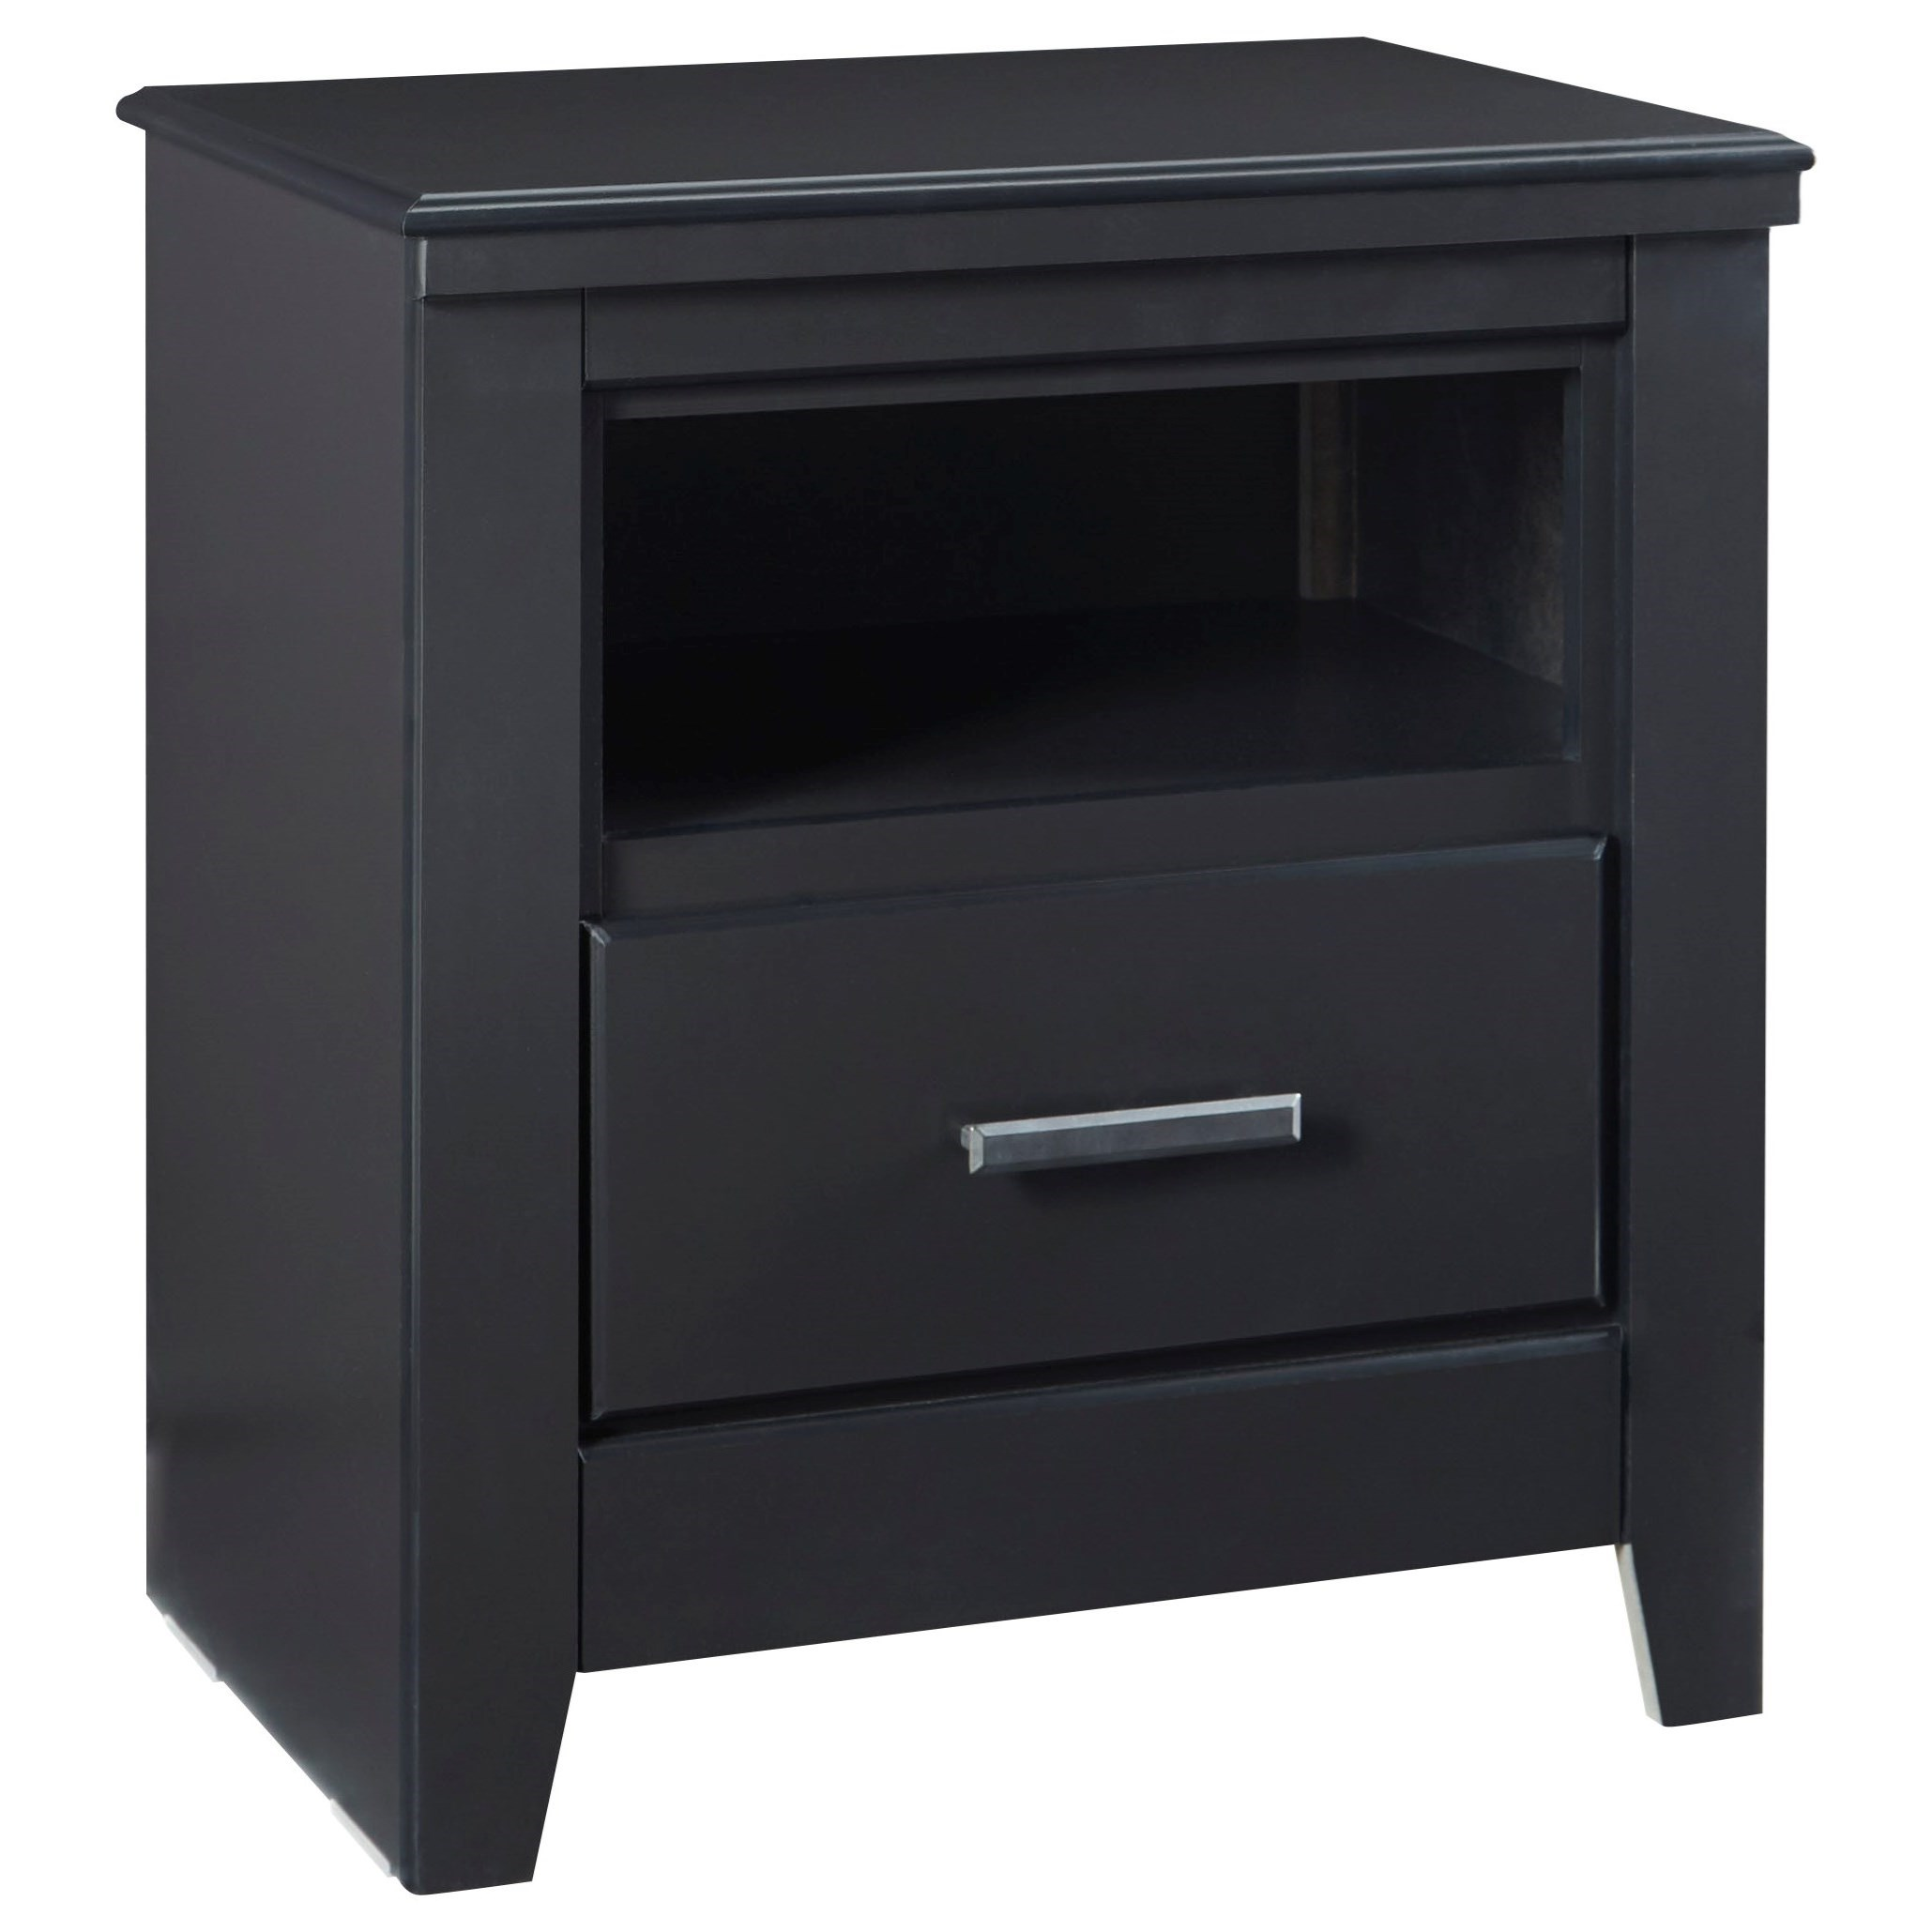 Standard Furniture Modesto Nightstand - Item Number: 65057